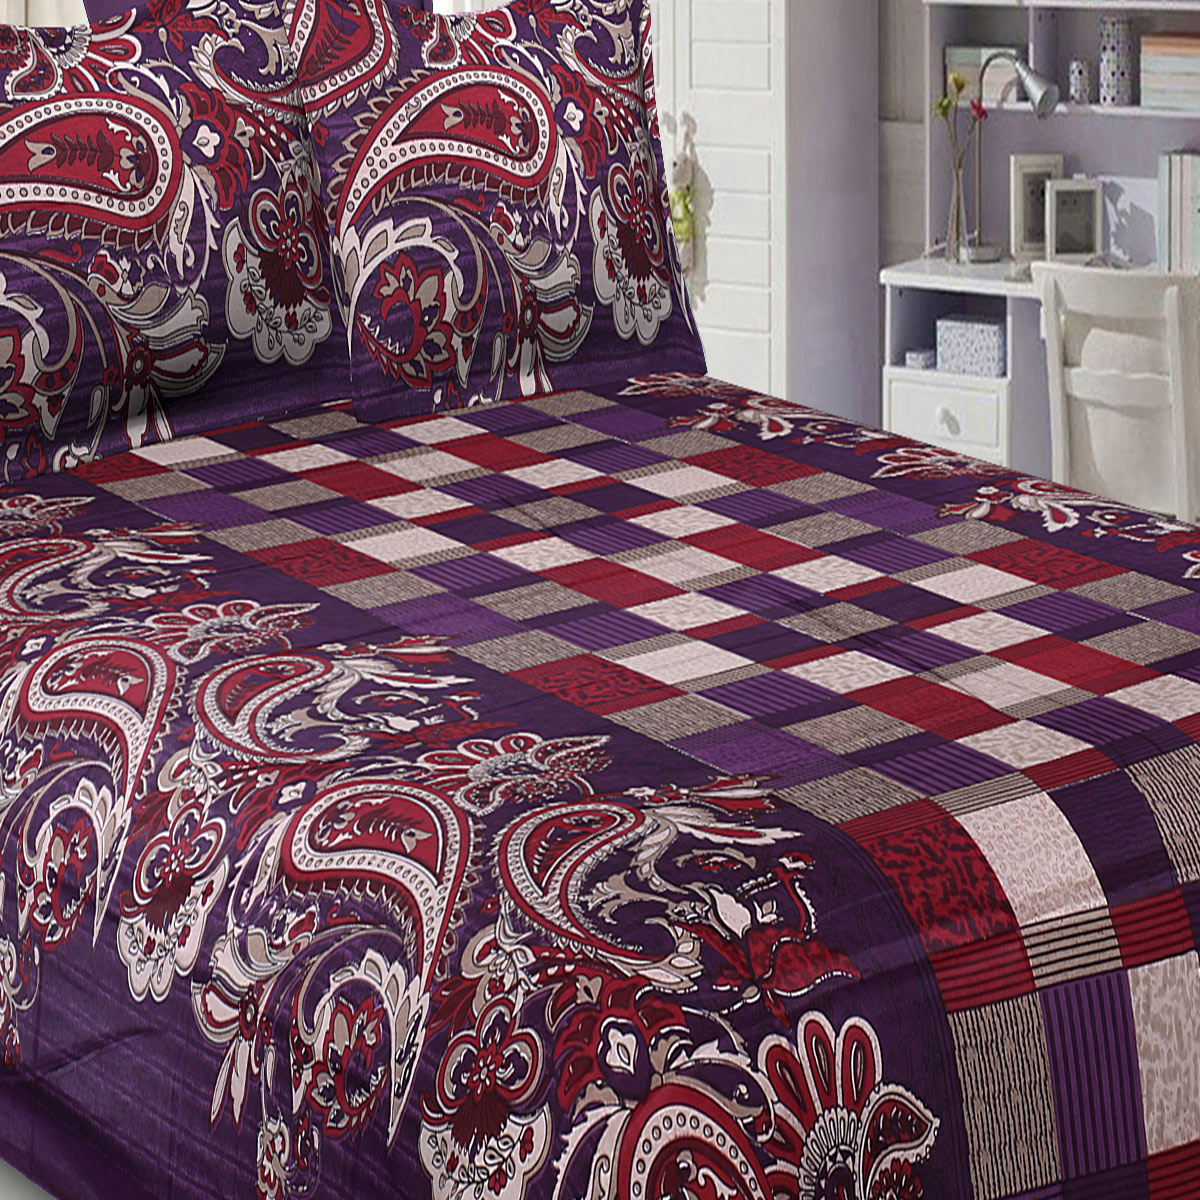 Impressive Purple Checks and Paisley Floral Printed Pure Cotton Jaipuri Procian Bedsheet With Two Pillow Cover